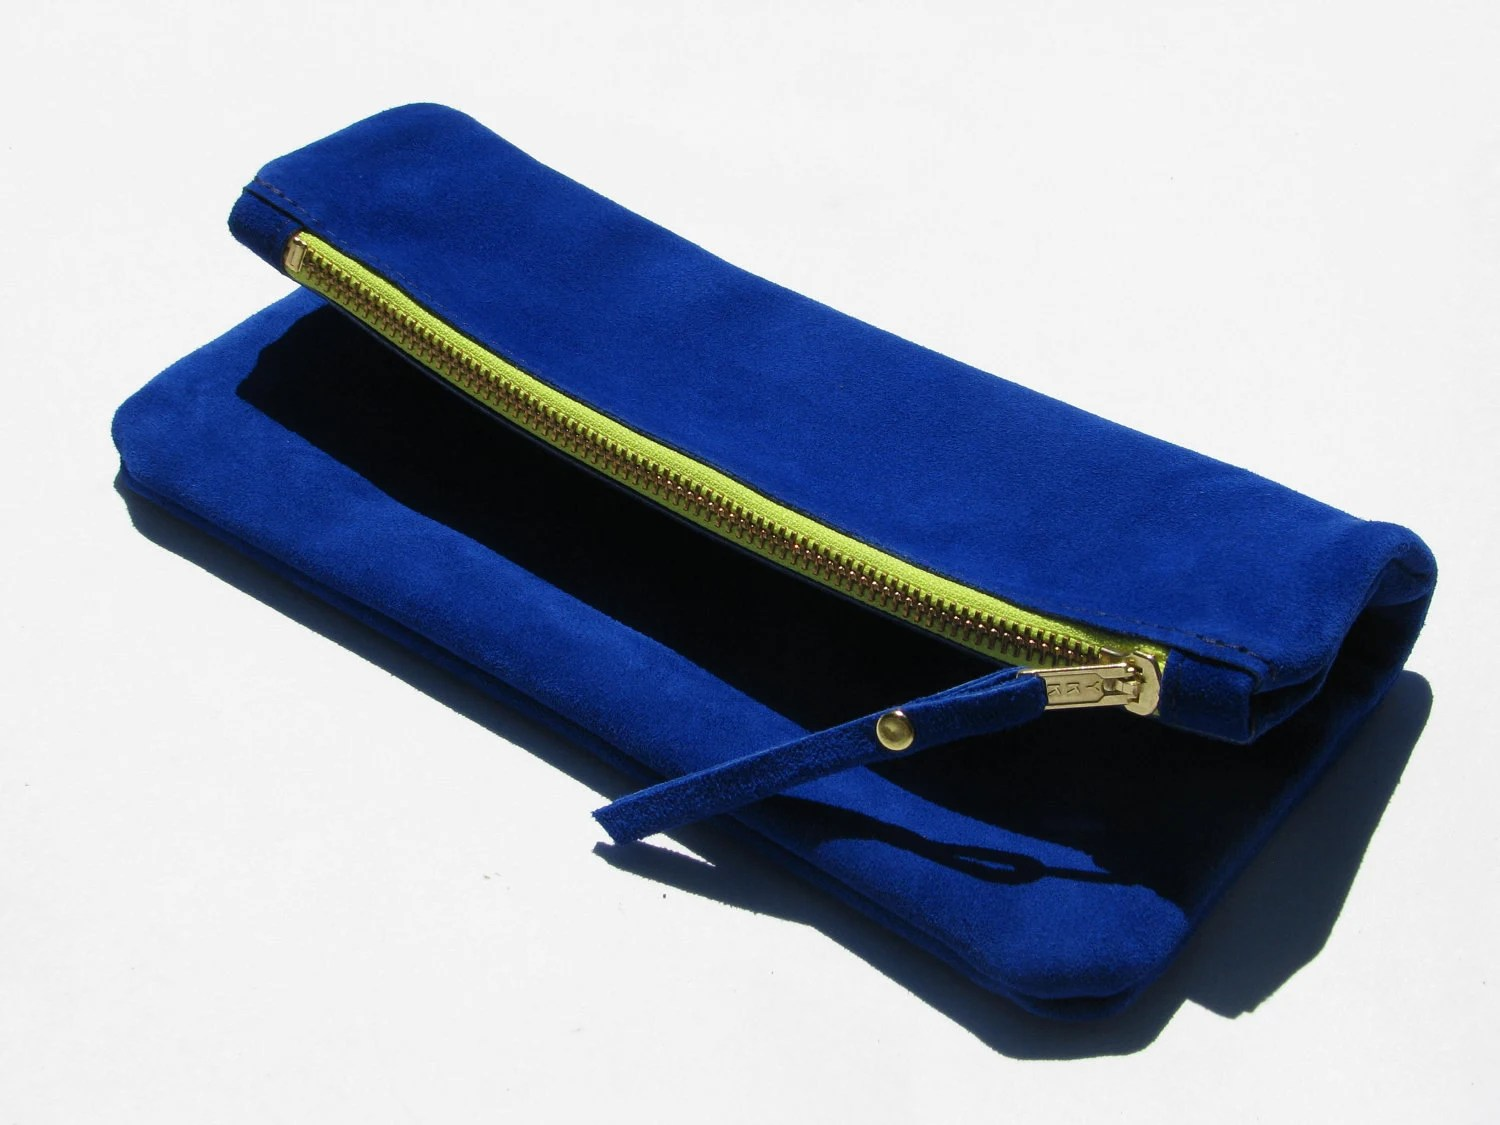 The MIDI Clutch  / / /  C O B A L T & N E O N  / / /  medium suede leather clutch in bright blue and neon yellow - JoynerAvenue